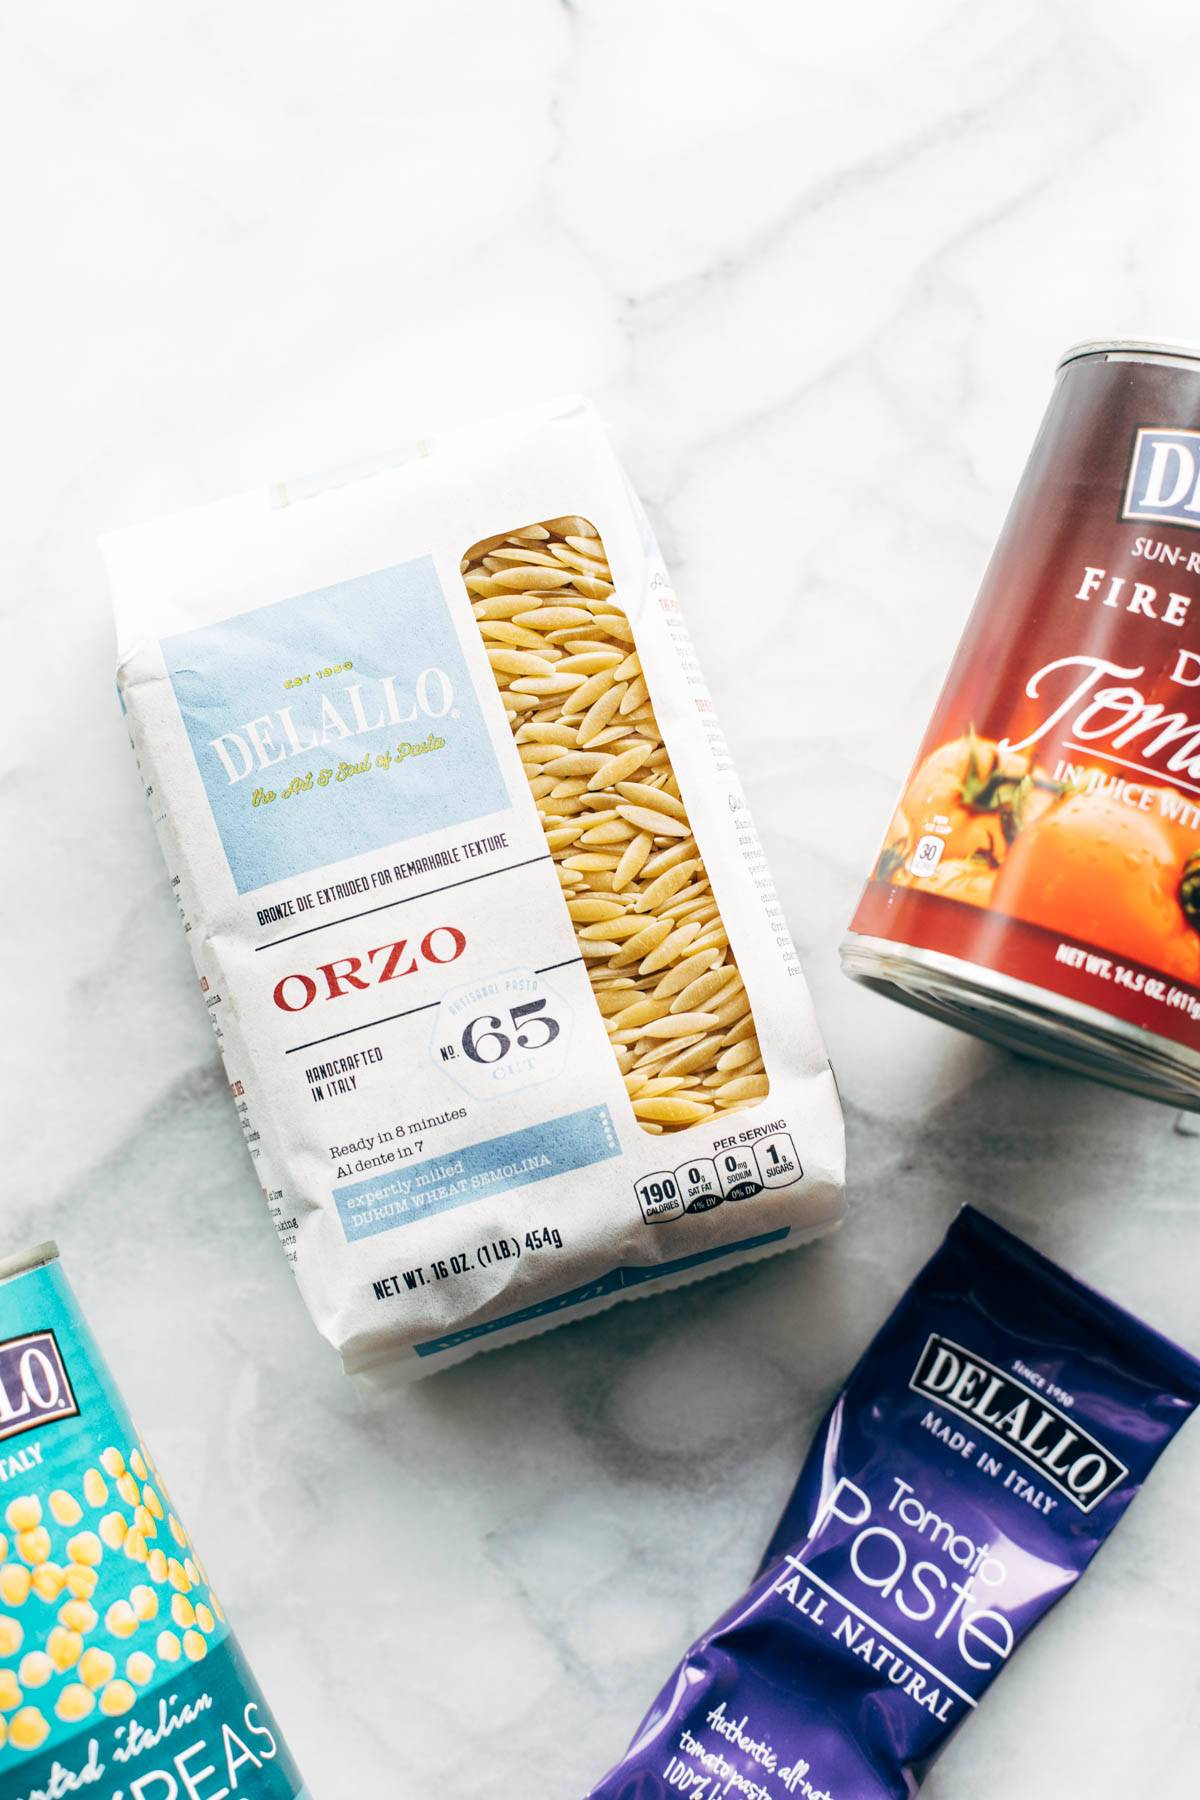 DeLallo ingredients for Greek Baked Orzo.